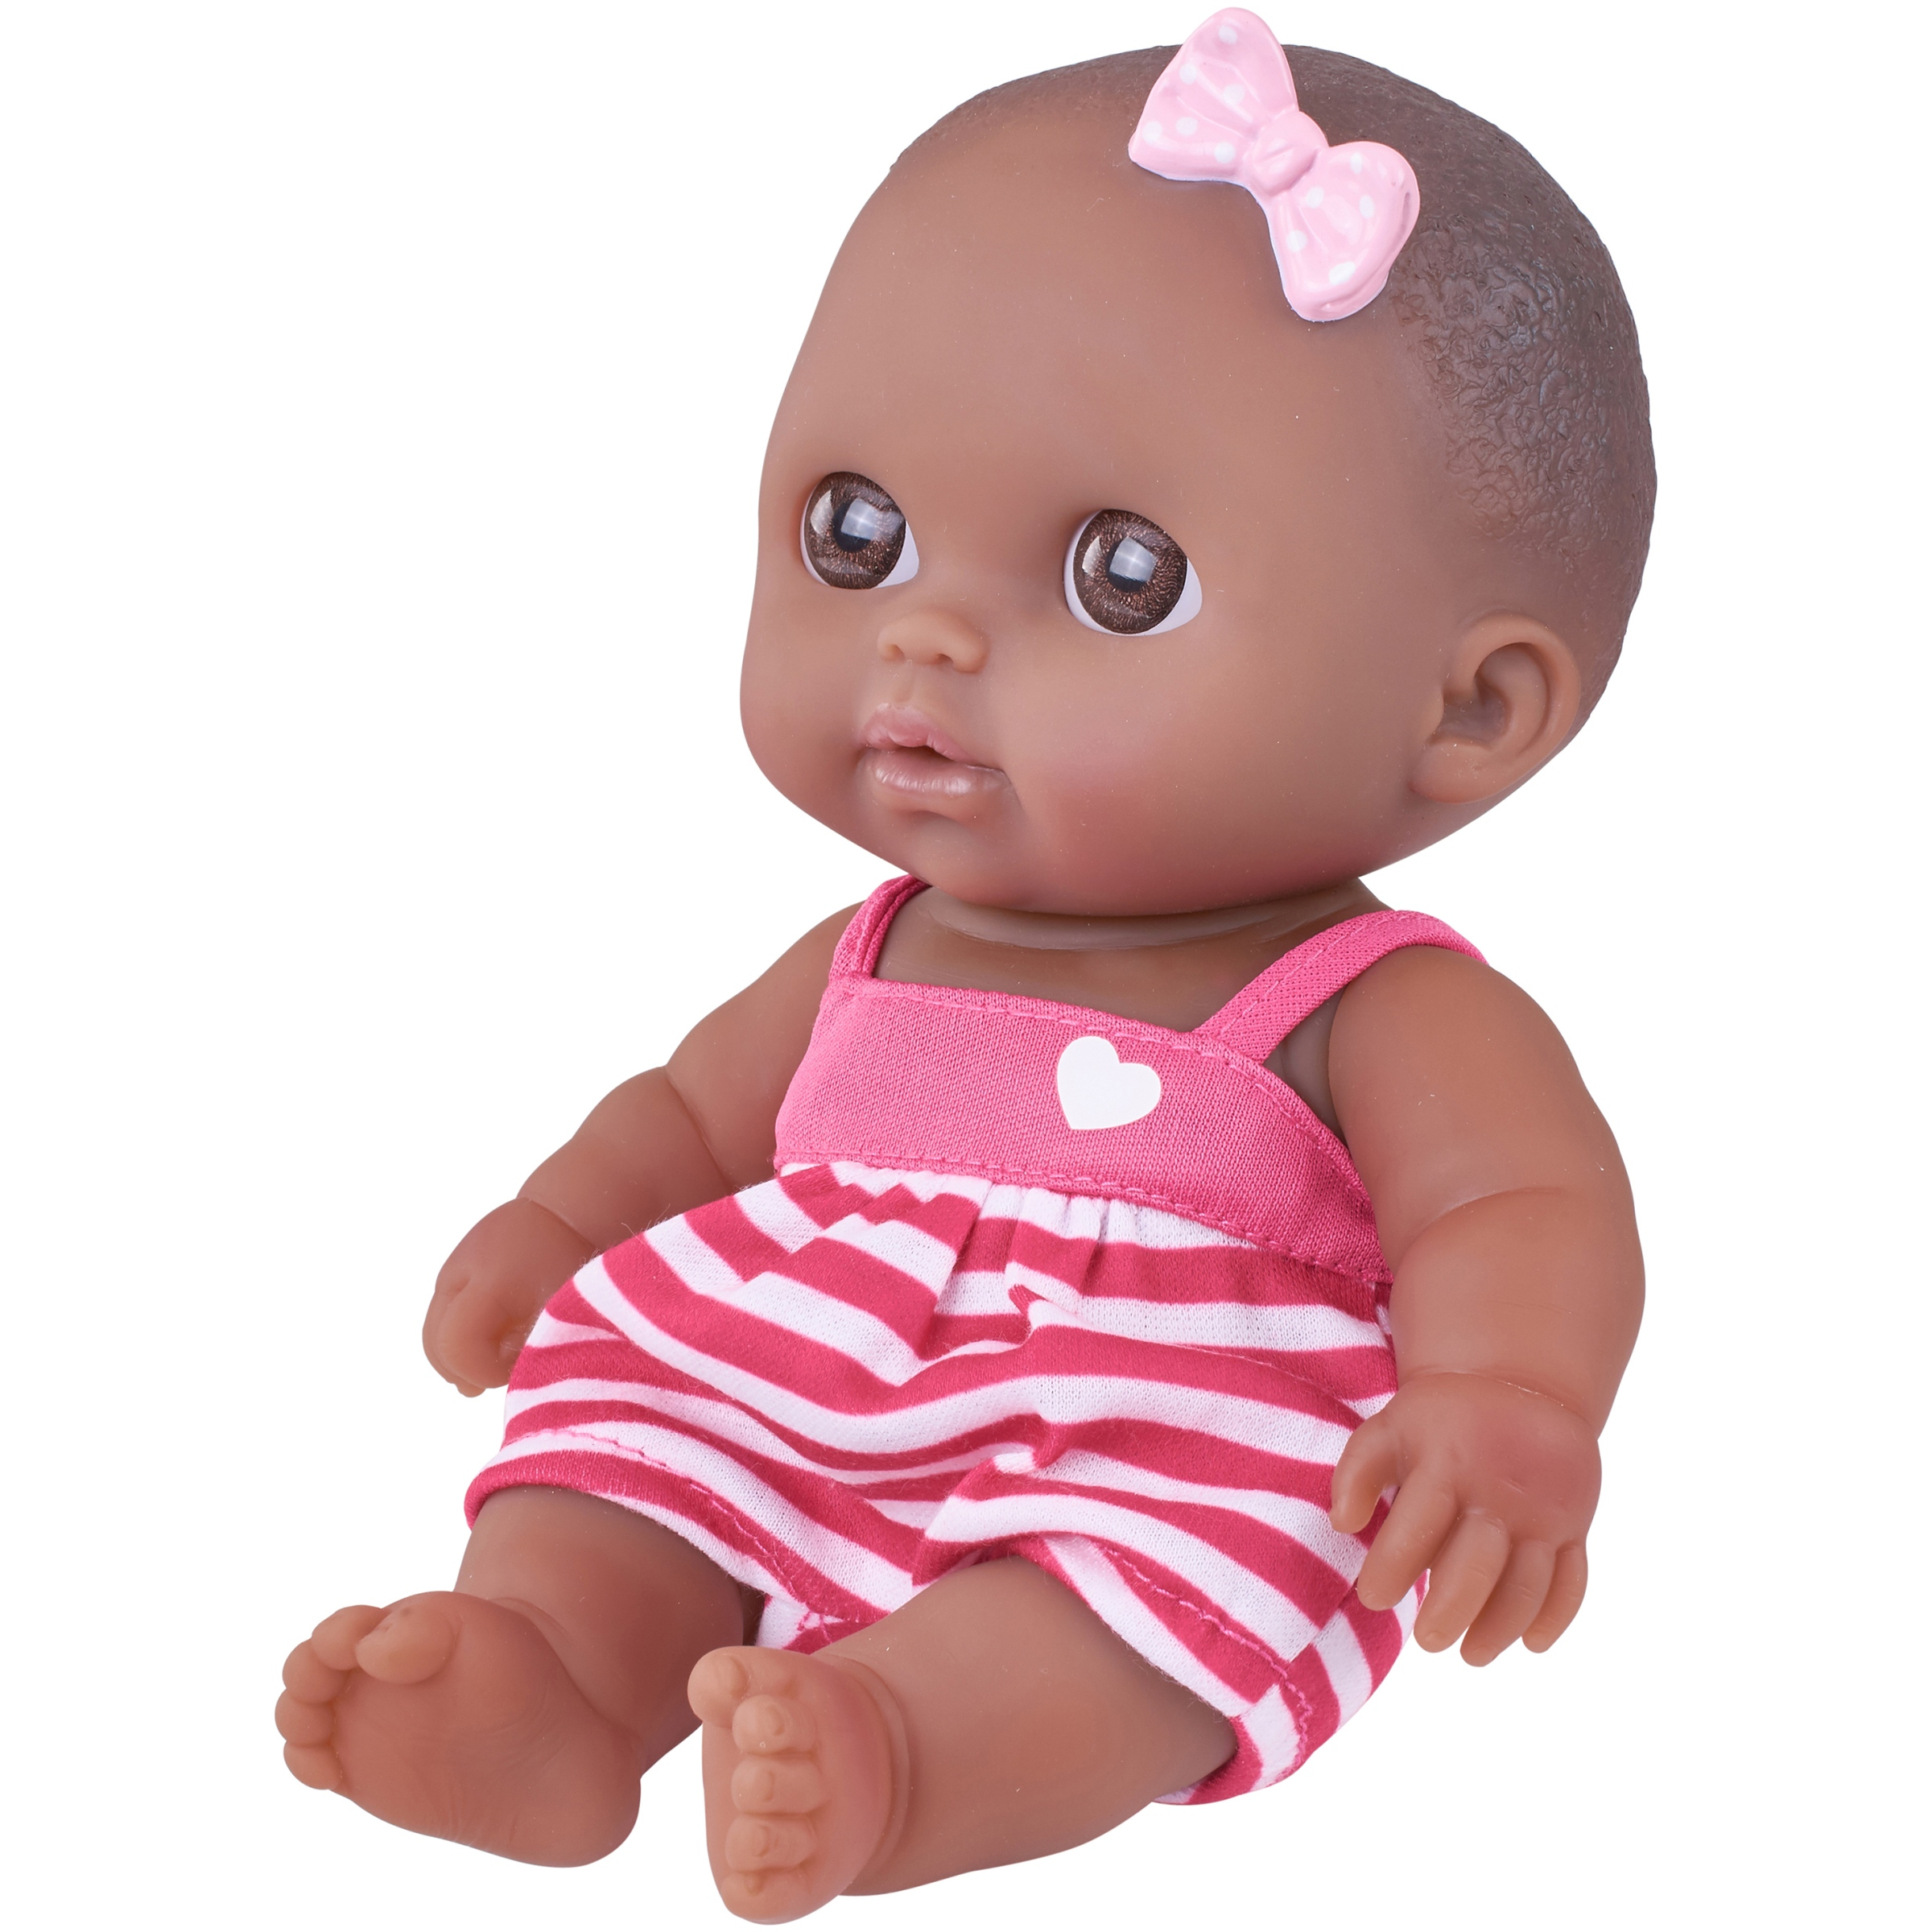 "My Sweet Love Lil Cutsies 8.5"" Baby Doll with Pink and White Outfit"